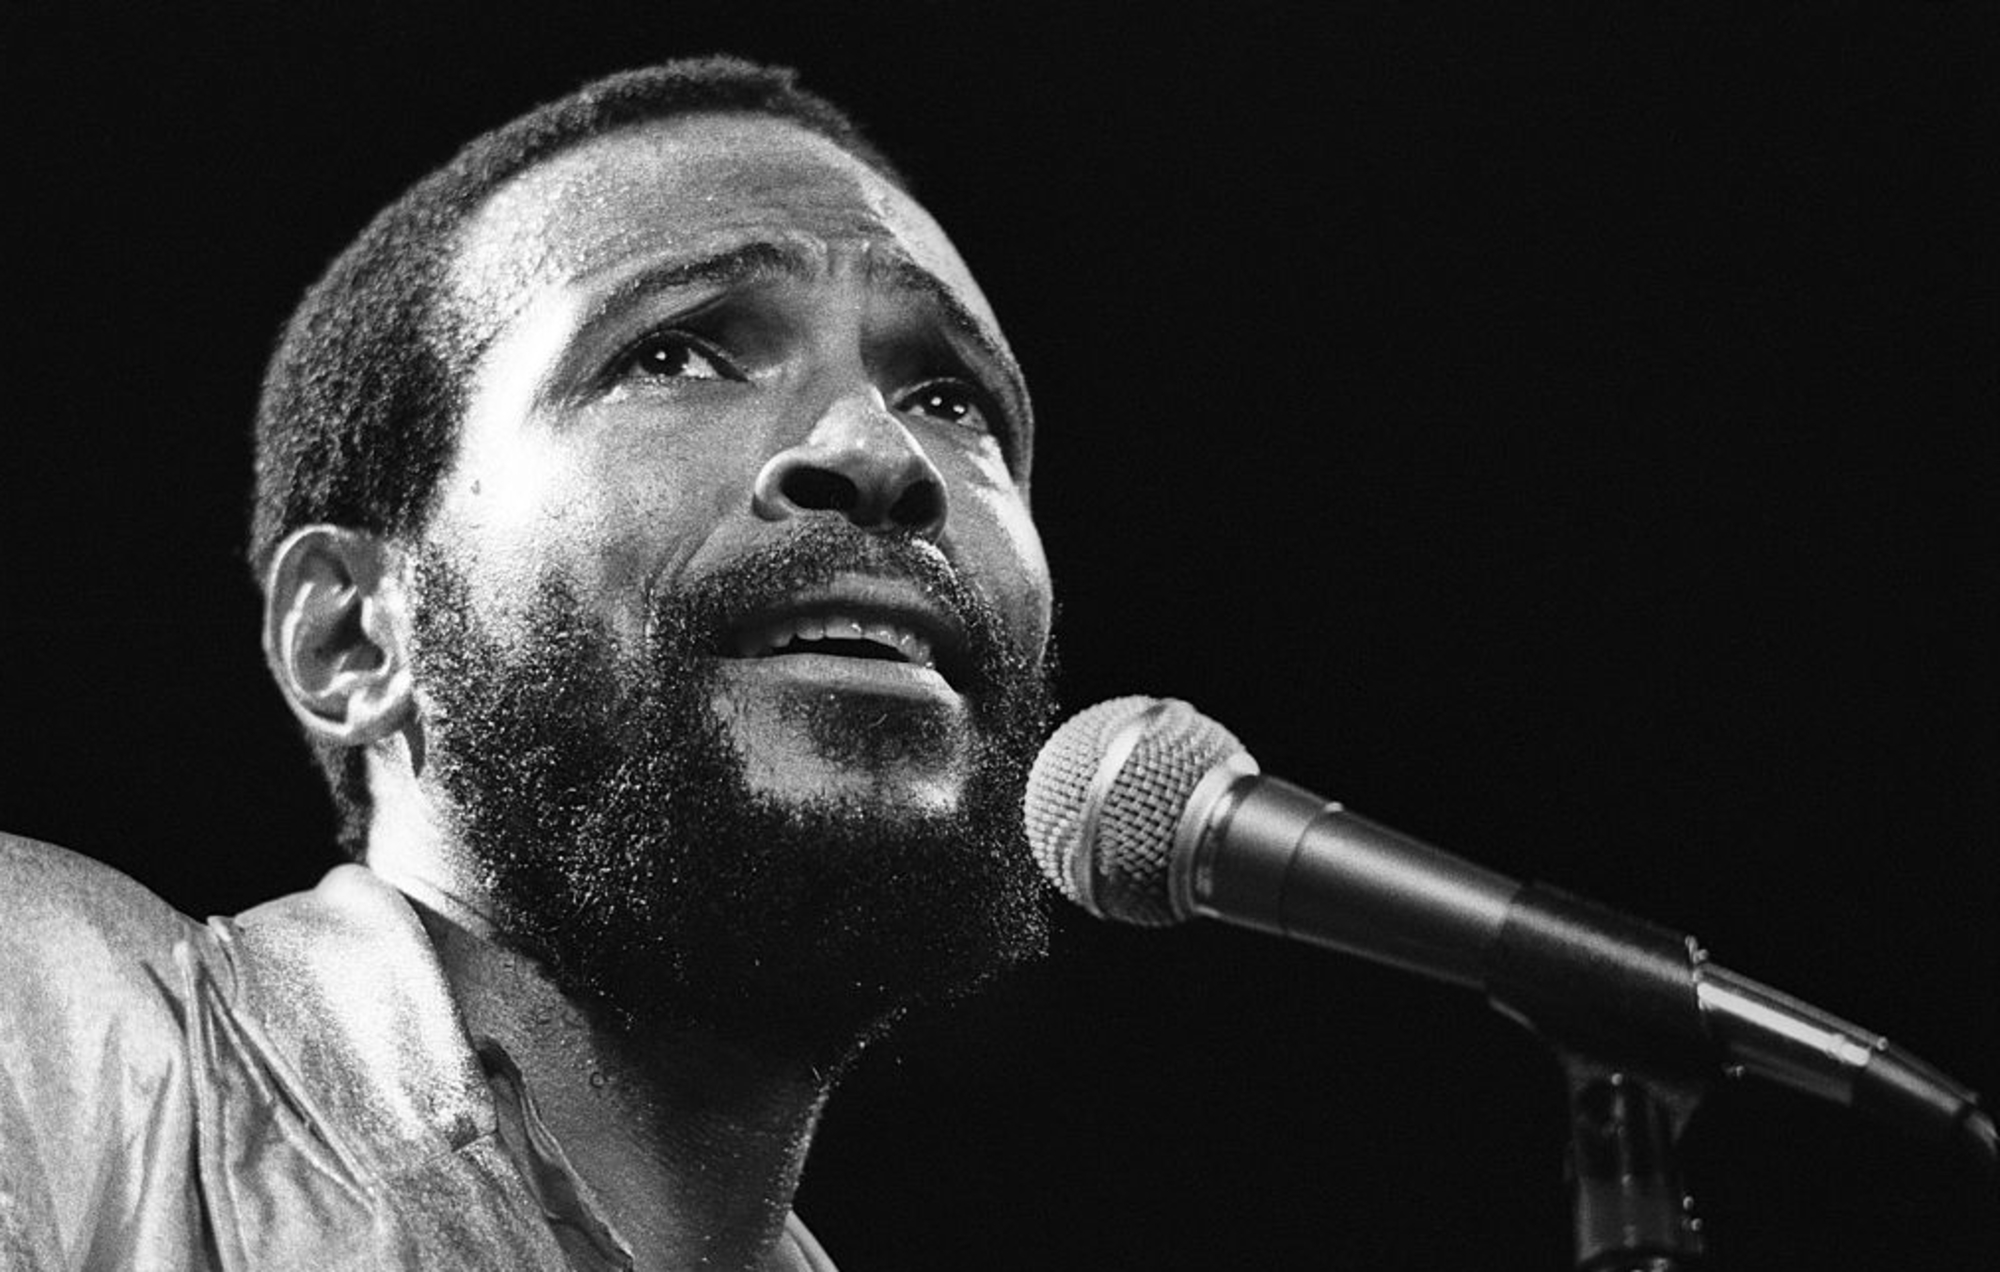 Rare Marvin Gaye instrumental album made available for very first time